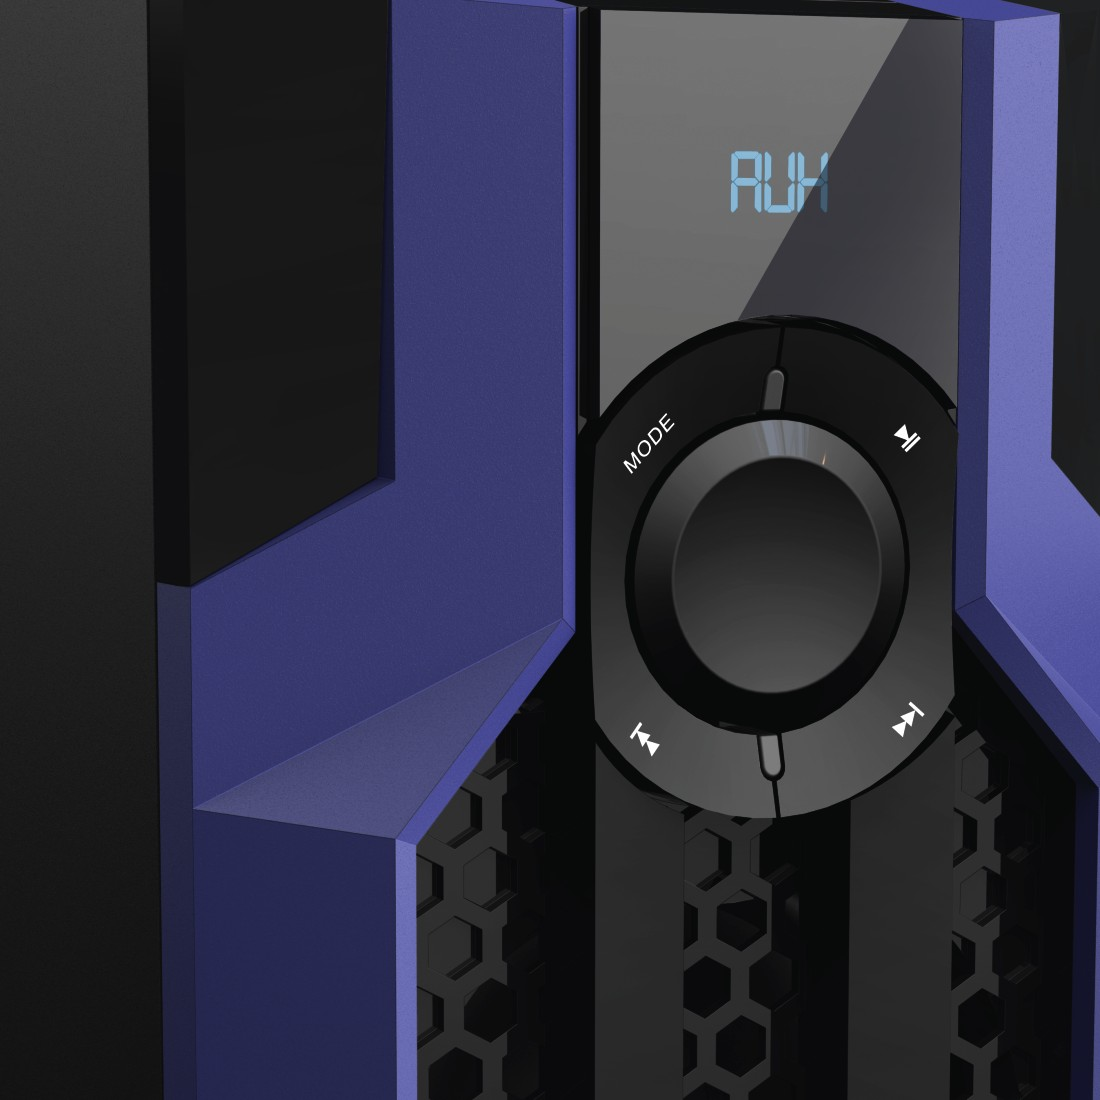 dex Druckfähiges Detail - Hama, Gaming-Sound-System uRage SoundZ 2.1 Evolution